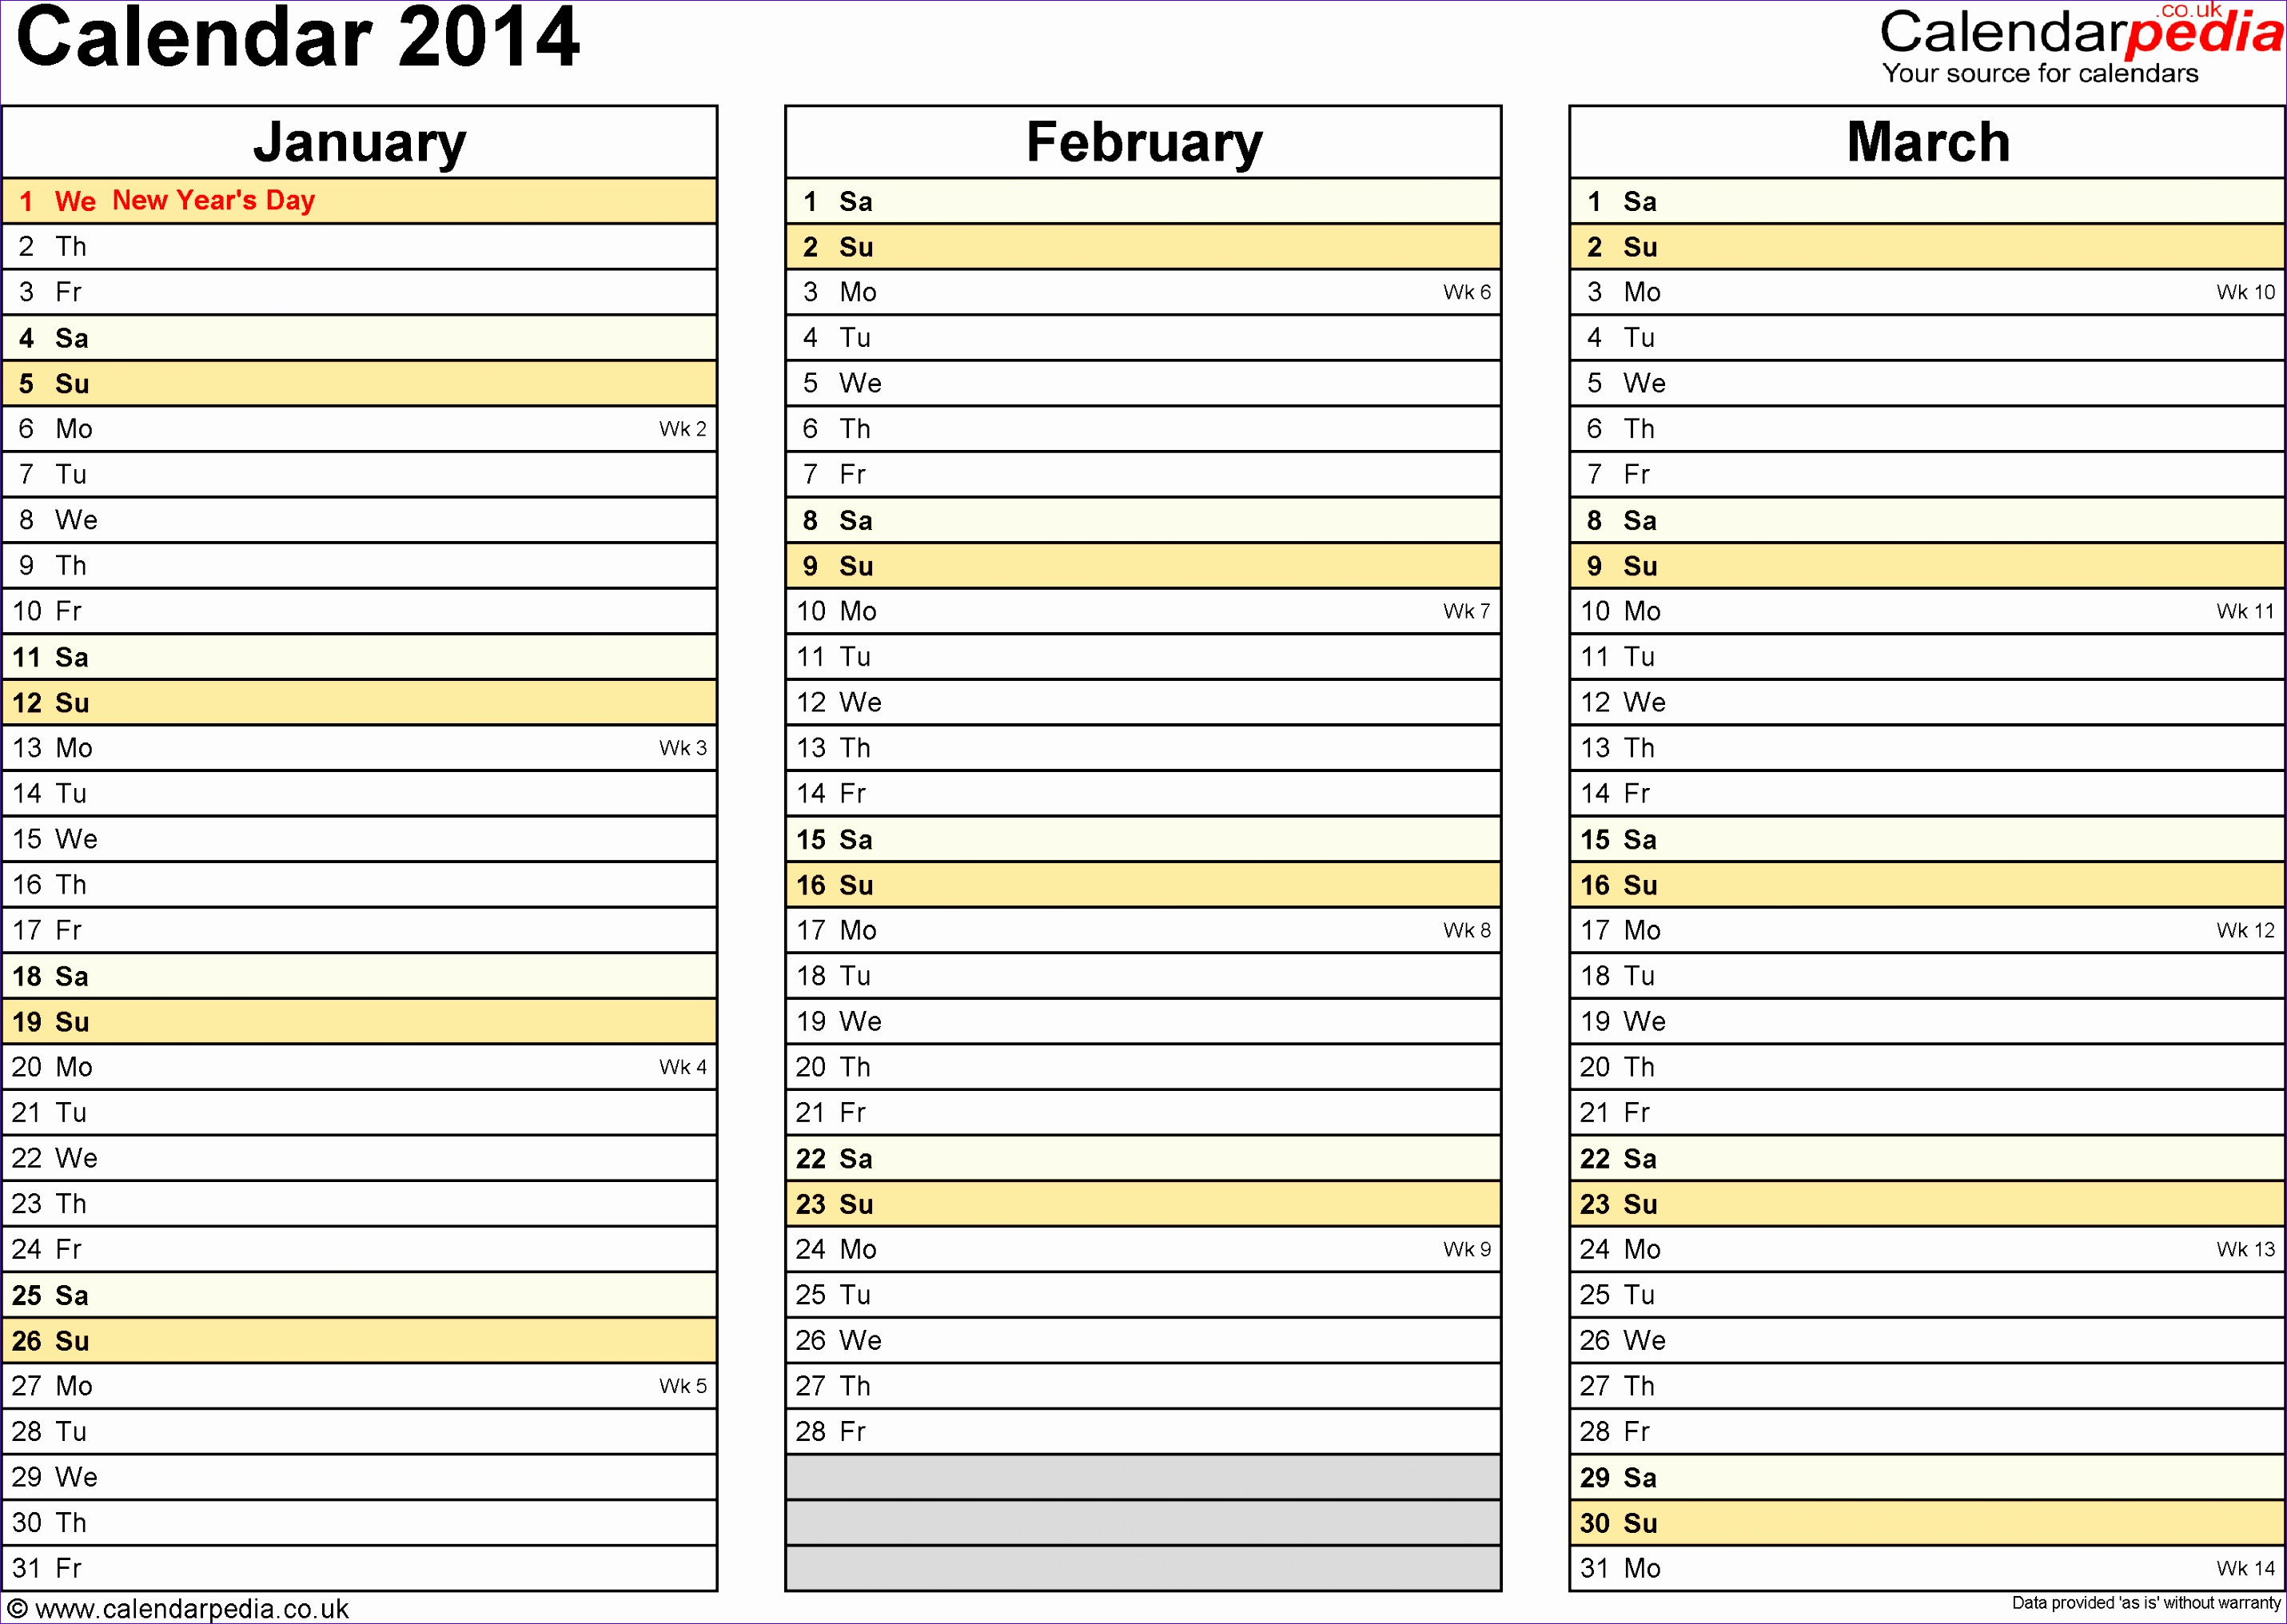 Website Project Plan Template Excel Xszle Fresh Excel Year Planner Calendar 2014 Uk 15 Free Printable Templates